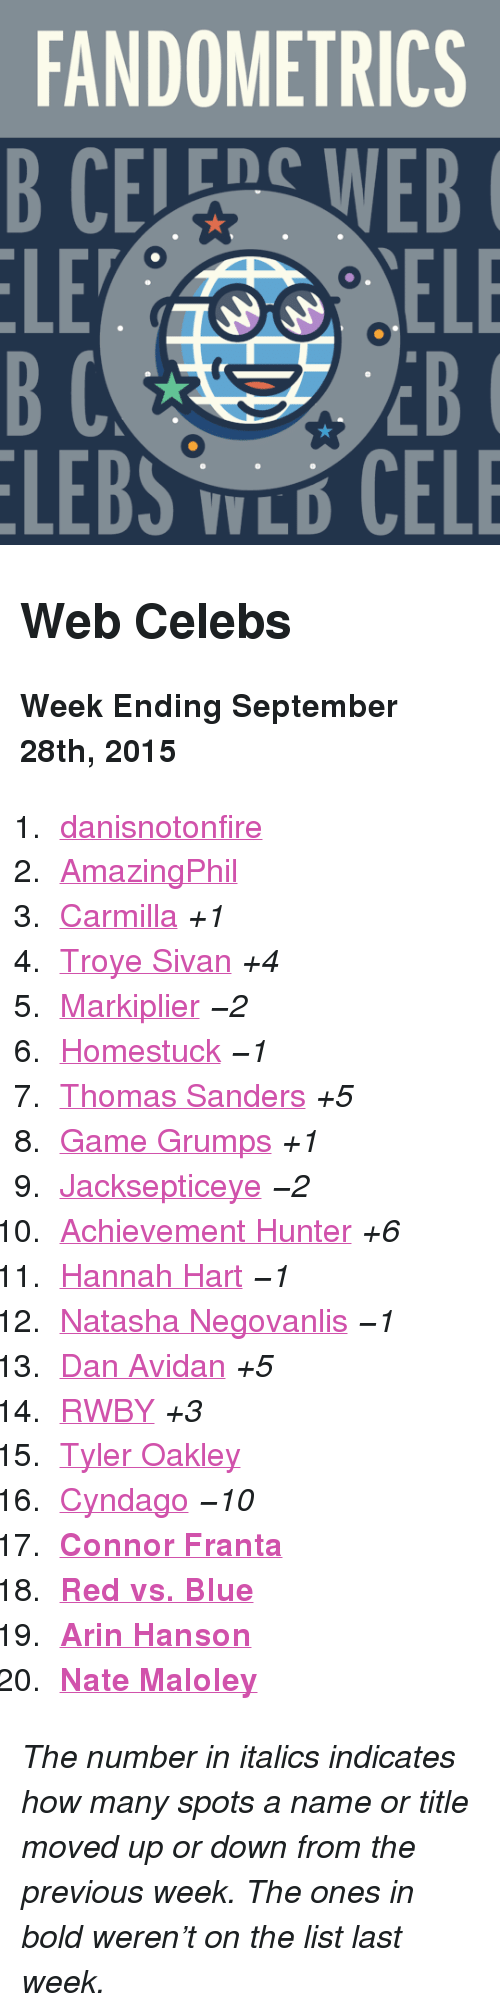 """Red vs. Blue: FANDOMETRICS  B CELEDS WEB  LE  EB  LEBS LO CELE <h2>Web Celebs</h2><p><b>Week Ending September 28th, 2015</b></p><ol><li><a href=""""http://www.tumblr.com/search/danisnotonfire"""">danisnotonfire</a></li>  <li><a href=""""http://www.tumblr.com/search/amazingphil"""">AmazingPhil</a></li>  <li><a href=""""http://www.tumblr.com/search/carmilla"""">Carmilla</a><i>+1</i></li>  <li><a href=""""http://www.tumblr.com/search/troye%20sivan"""">Troye Sivan</a><i>+4</i></li>  <li><a href=""""http://www.tumblr.com/search/markiplier"""">Markiplier</a><i><i>−2</i></i></li>  <li><a href=""""http://www.tumblr.com/search/homestuck"""">Homestuck</a><i><i>−1</i></i></li>  <li><a href=""""http://www.tumblr.com/search/thomas%20sanders"""">Thomas Sanders</a><i>+5</i></li>  <li><a href=""""http://www.tumblr.com/search/game%20grumps"""">Game Grumps</a><i>+1</i></li>  <li><a href=""""http://www.tumblr.com/search/jacksepticeye"""">Jacksepticeye</a><i><i>−2</i></i></li>  <li><a href=""""http://www.tumblr.com/search/achievement%20hunter"""">Achievement Hunter</a><i>+6</i></li>  <li><a href=""""http://www.tumblr.com/search/hannah%20hart"""">Hannah Hart</a><i><i>−1</i></i></li>  <li><a href=""""http://www.tumblr.com/search/natasha%20negovanlis"""">Natasha Negovanlis</a><i><i>−1</i></i></li>  <li><a href=""""http://www.tumblr.com/search/dan%20avidan"""">Dan Avidan</a><i>+5</i></li>  <li><a href=""""http://www.tumblr.com/search/rwby"""">RWBY</a><i>+3</i></li>  <li><a href=""""http://www.tumblr.com/search/tyler%20oakley"""">Tyler Oakley</a></li>  <li><a href=""""http://www.tumblr.com/search/cyndago"""">Cyndago</a><i><i>−10</i></i></li>  <li><a href=""""http://www.tumblr.com/search/connor%20franta""""><b>Connor Franta</b></a></li>  <li><a href=""""http://www.tumblr.com/search/rvb""""><b>Red vs. Blue</b></a></li>  <li><a href=""""http://www.tumblr.com/search/arin%20hanson""""><b>Arin Hanson</b></a></li>  <li><b><a href=""""http://www.tumblr.com/search/nate%20maloley"""">Nate Maloley</a></b></li></ol><p><i>The number in italics indicates how many spots a name or title moved up or down from the previous we"""